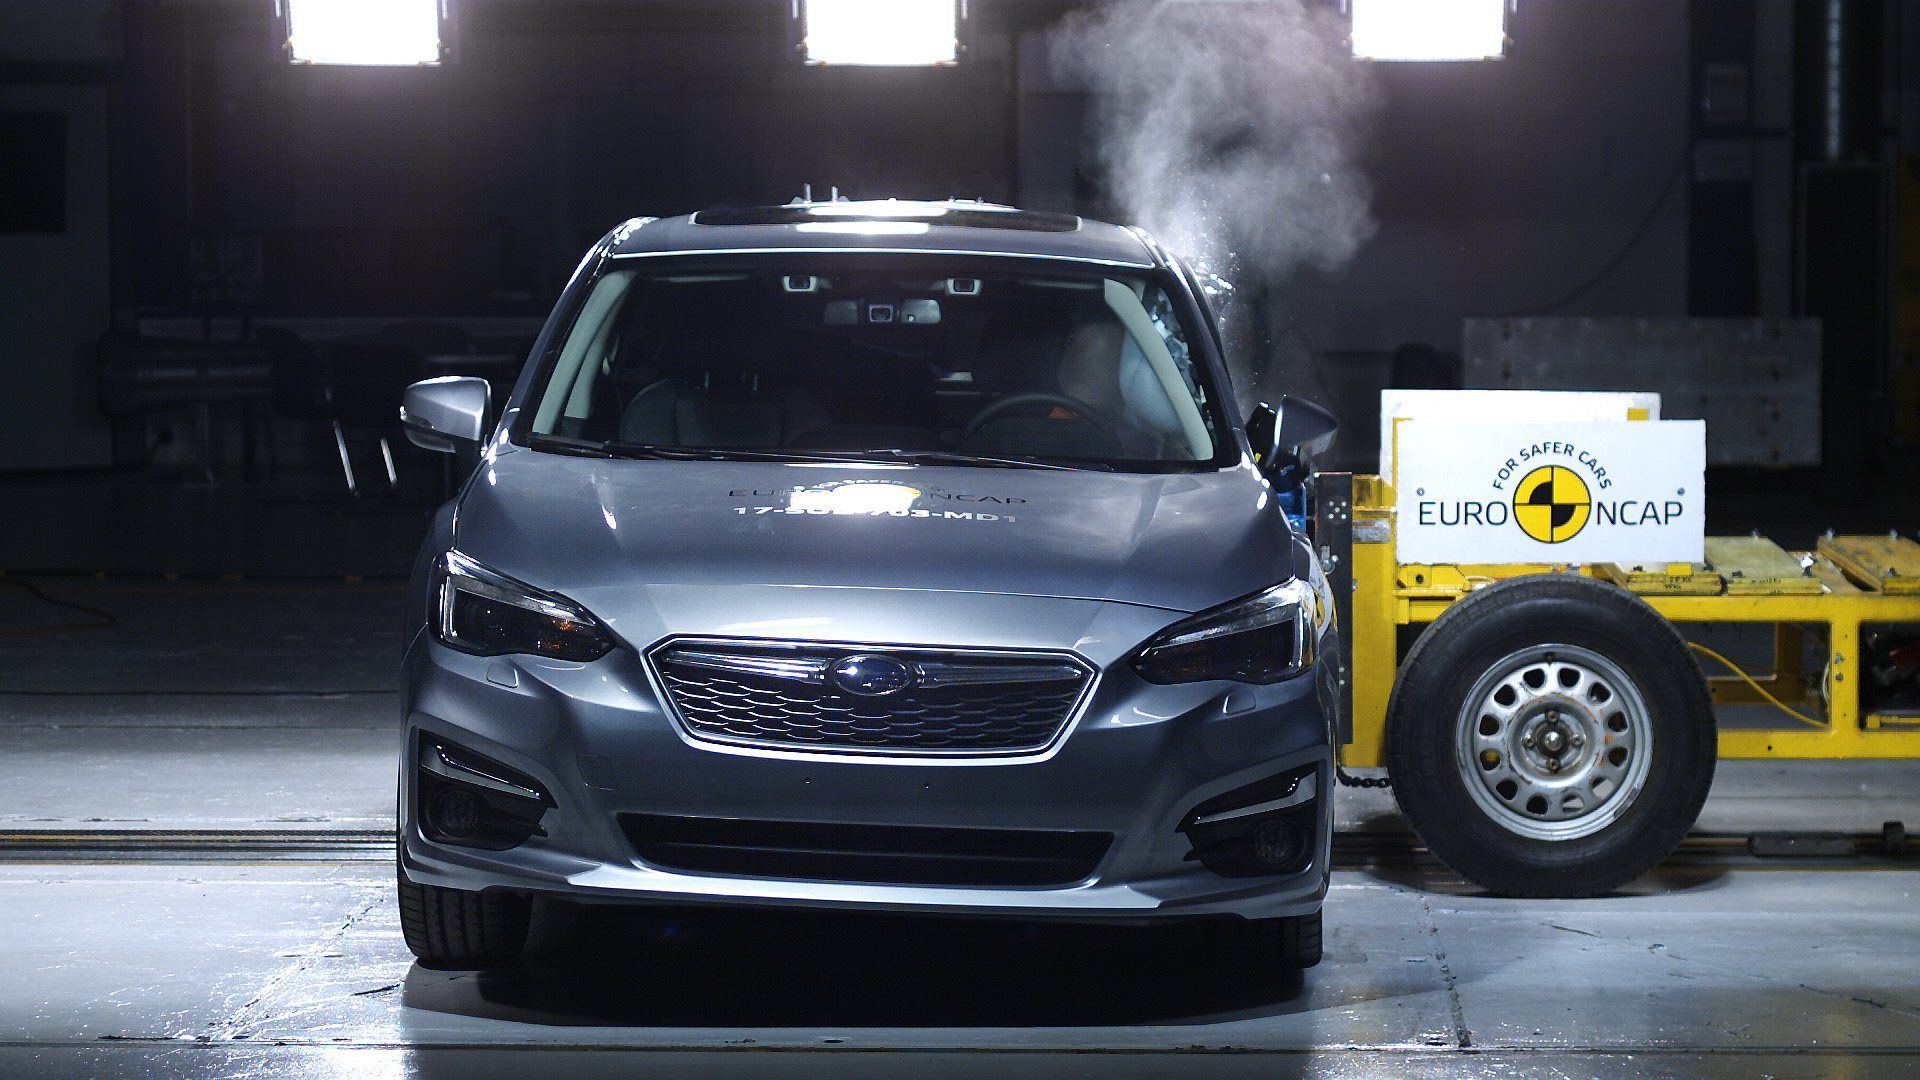 TWO TO THE TOP: THE ALL-NEW SUBARU XV AND IMPREZA ACHIEVE TOP EURO NCAP SAFETY ACCOLADES FOR 2017